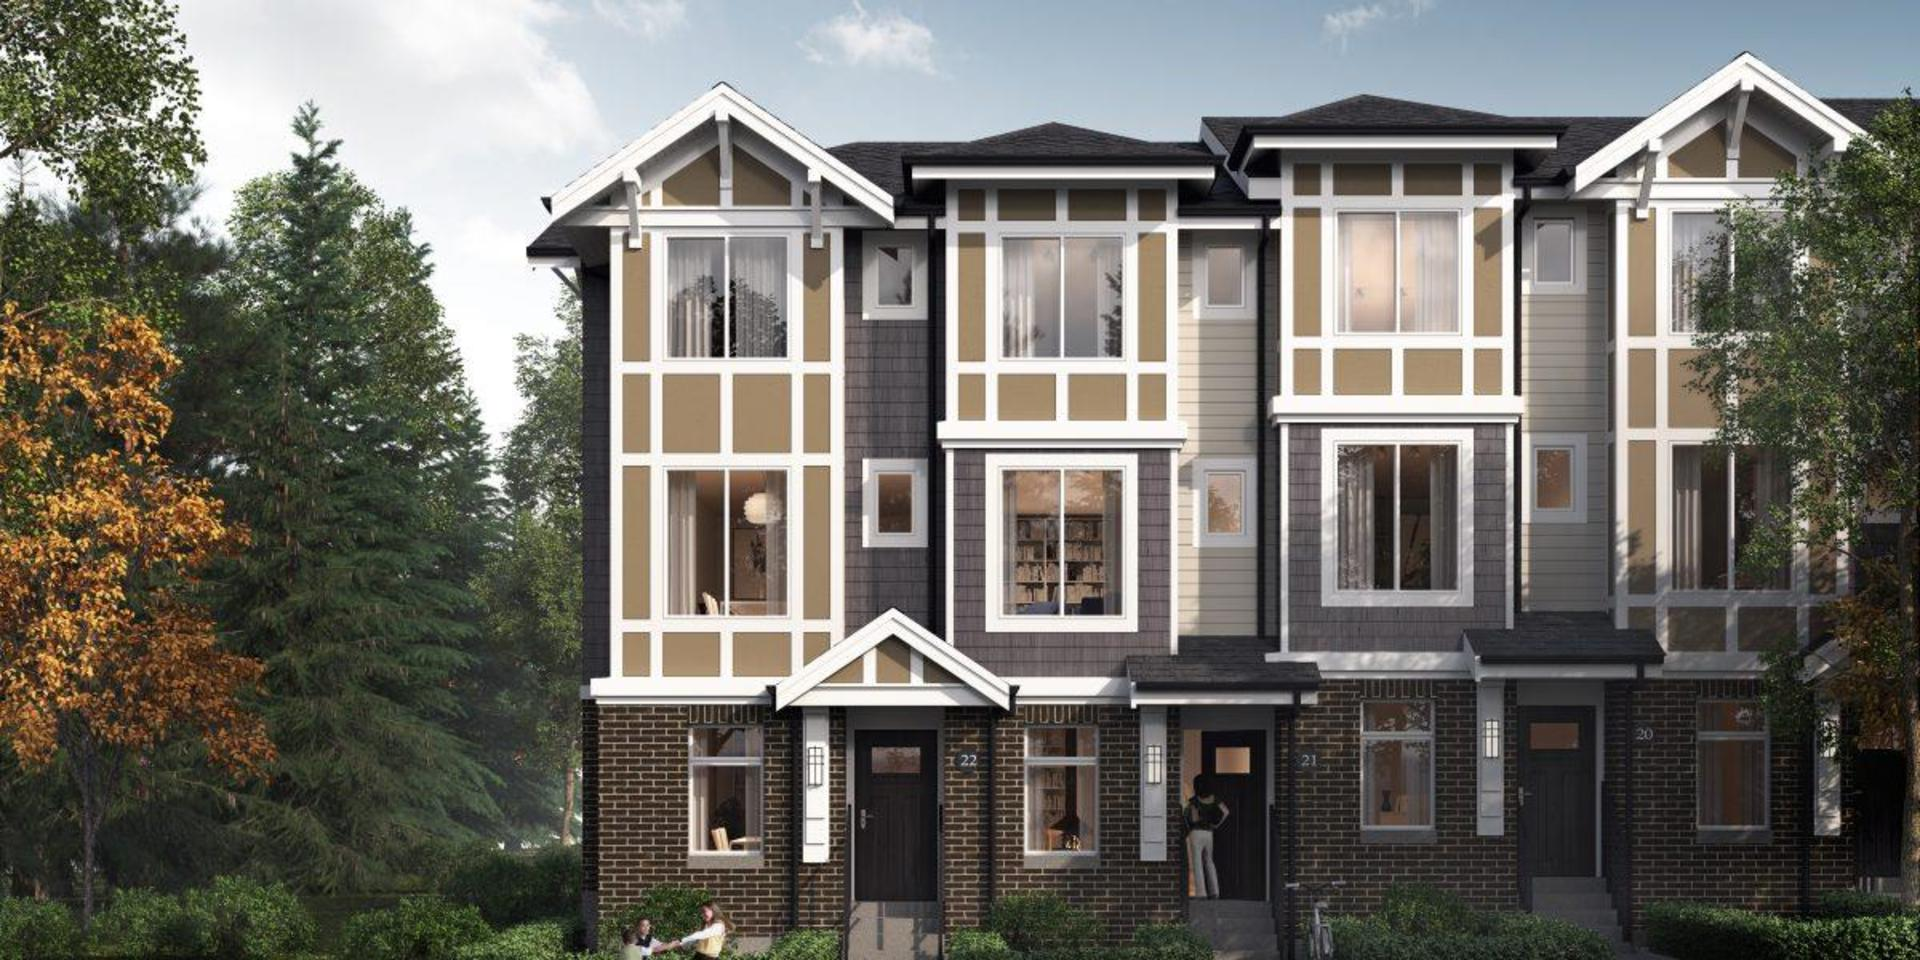 canopy-surrey-townhomes at Canopy At Tynehead Park (9718 162a Street, Fleetwood Tynehead, Surrey)